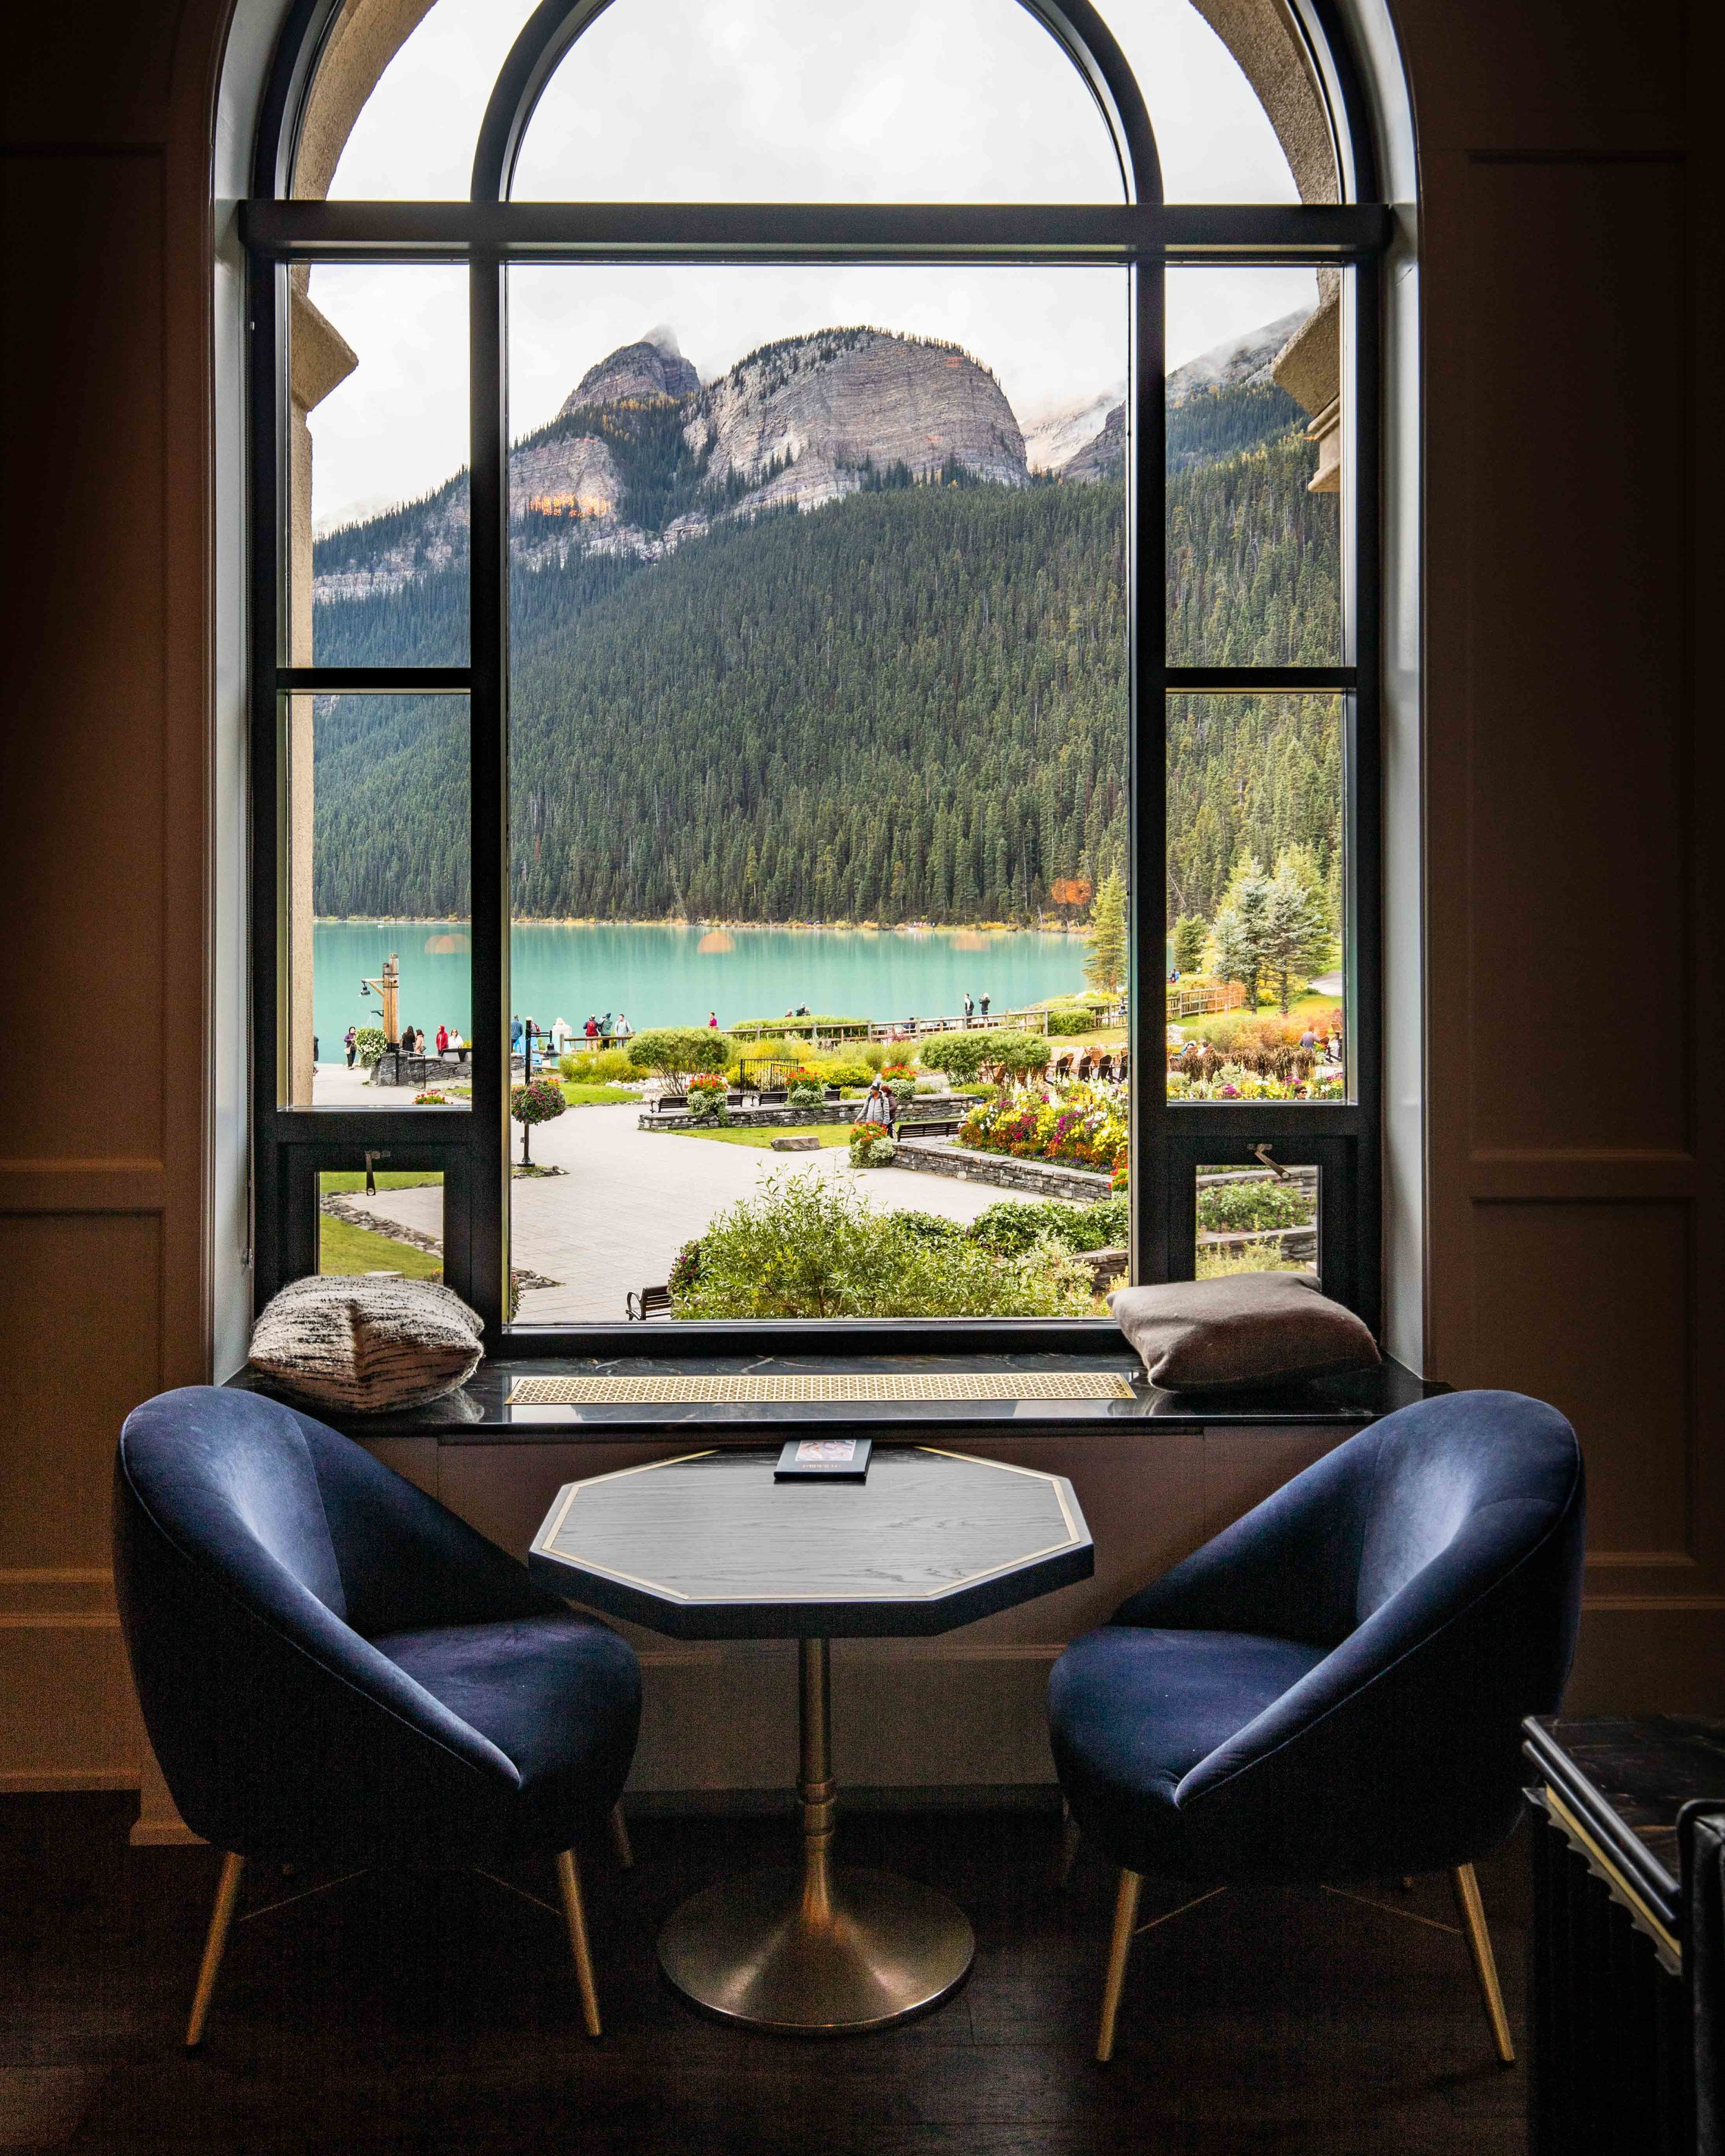 Lunch at the Fairmont - Things to do in Lake Louise